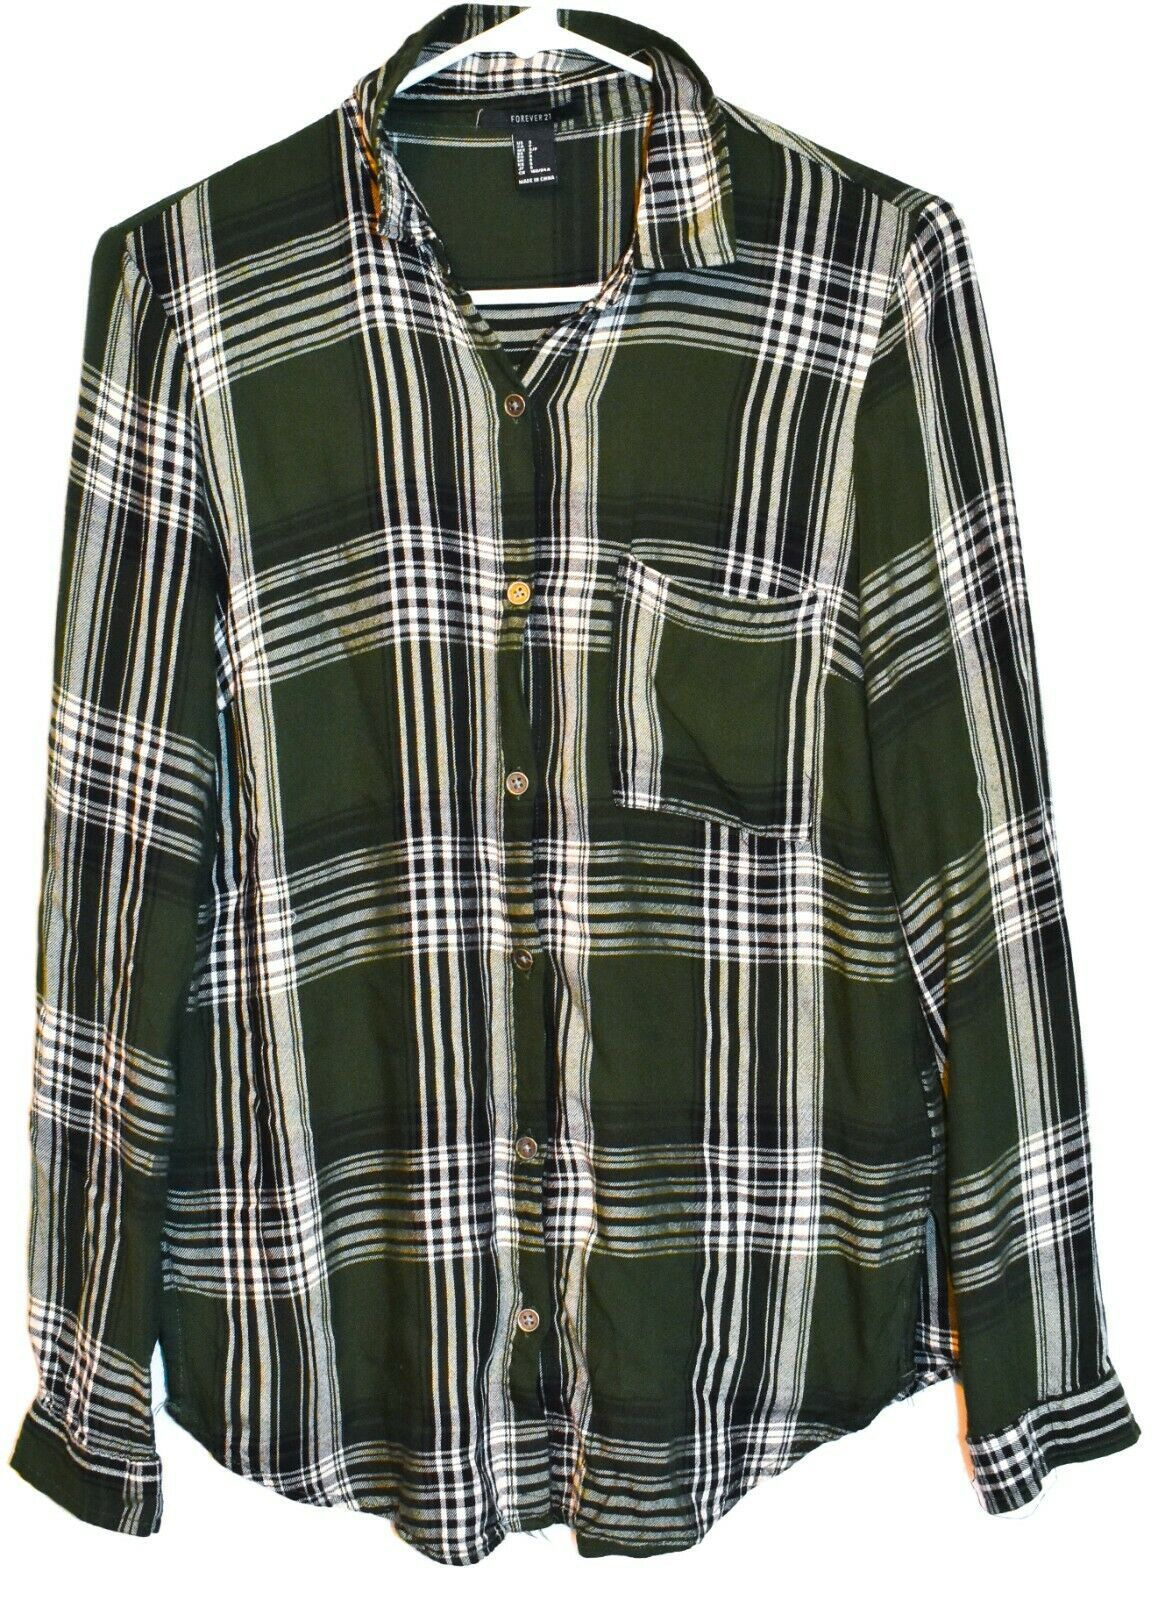 Forever 21 Women's Green & White Plaid Flannel Button Up Blouse Shirt Size S